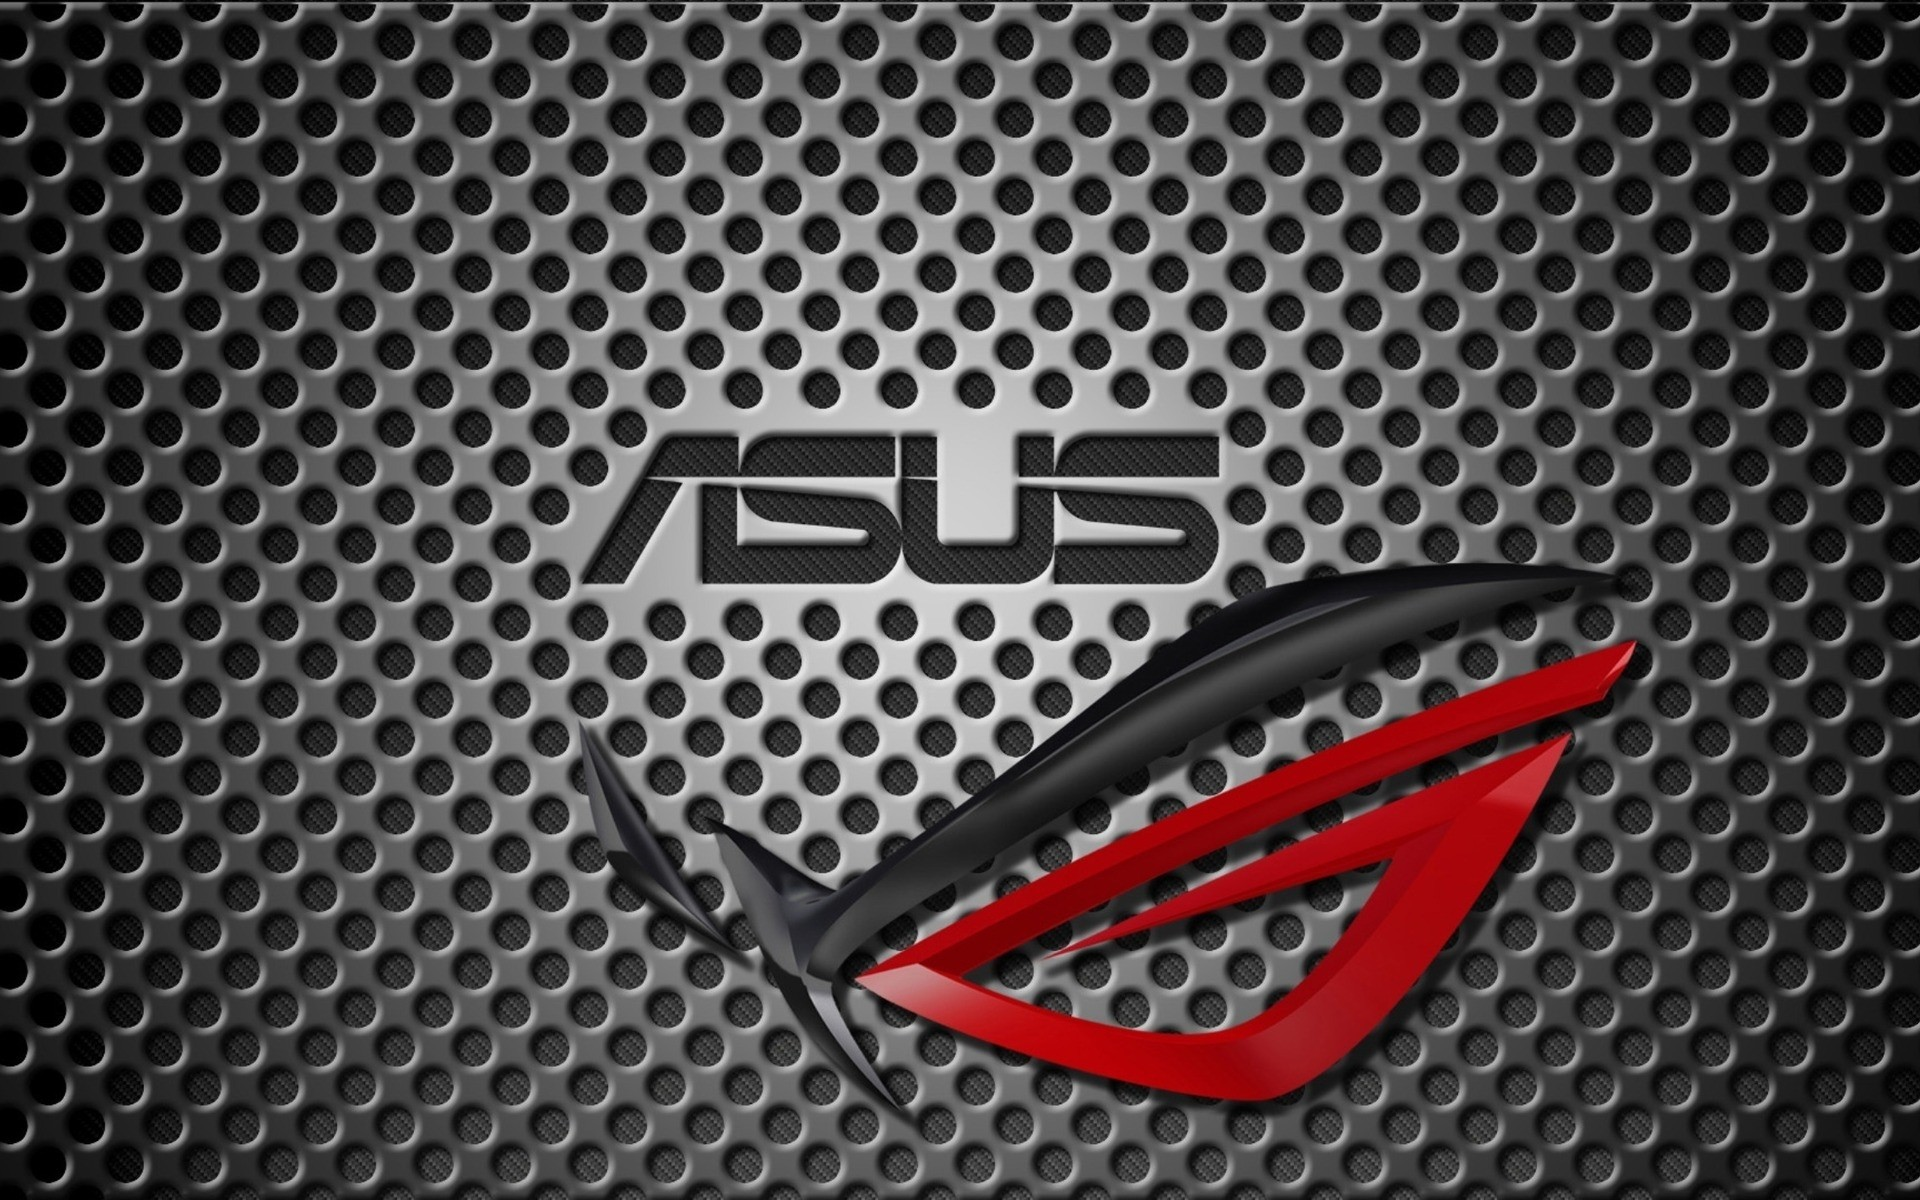 digital technology steel iron metallic aluminum desktop stainless steel design asus background asus logo